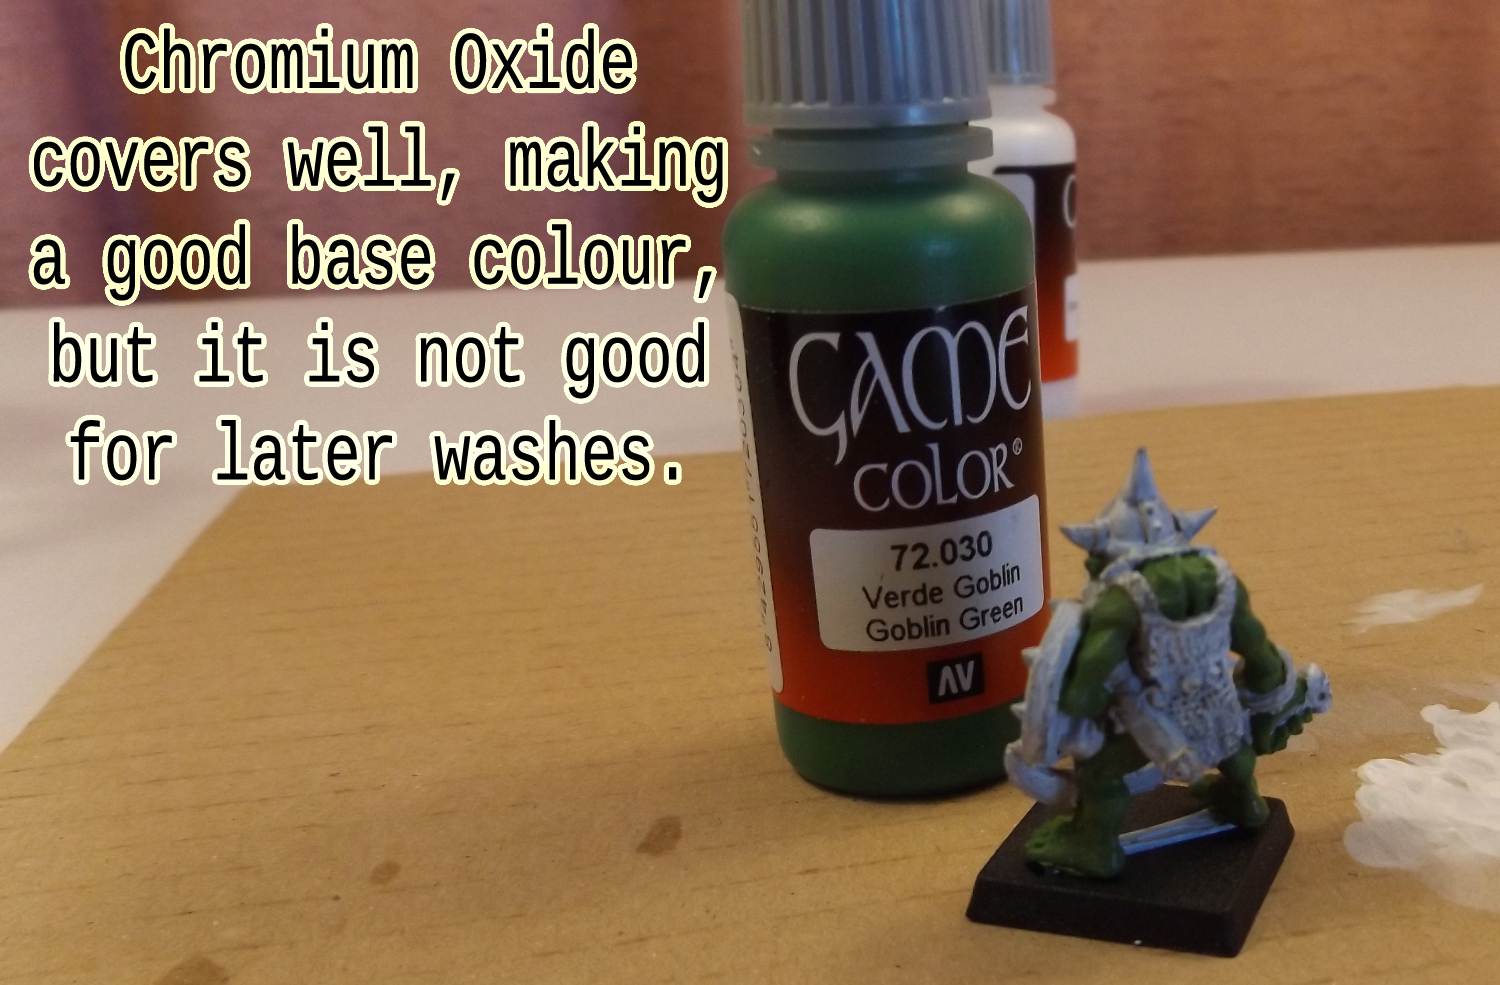 Chromium Oxide Green is a good base colour, but not great for washes. Use very little of it when doing them.